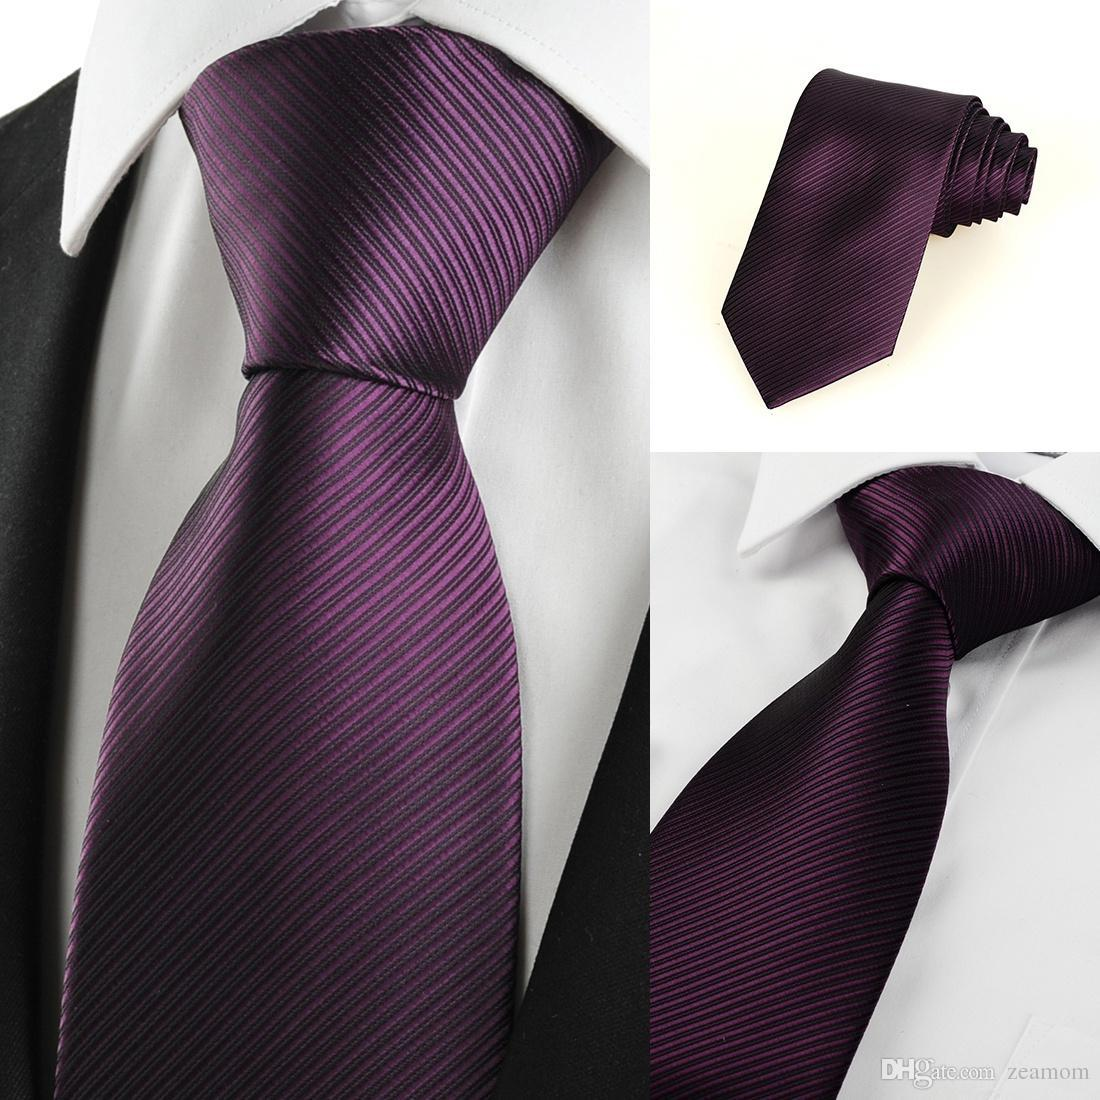 New striped plum purple mens tie formal suit necktie wedding new striped plum purple mens tie formal suit necktie wedding holiday gift work blouses neck ties from zeamom 377 dhgate ccuart Images